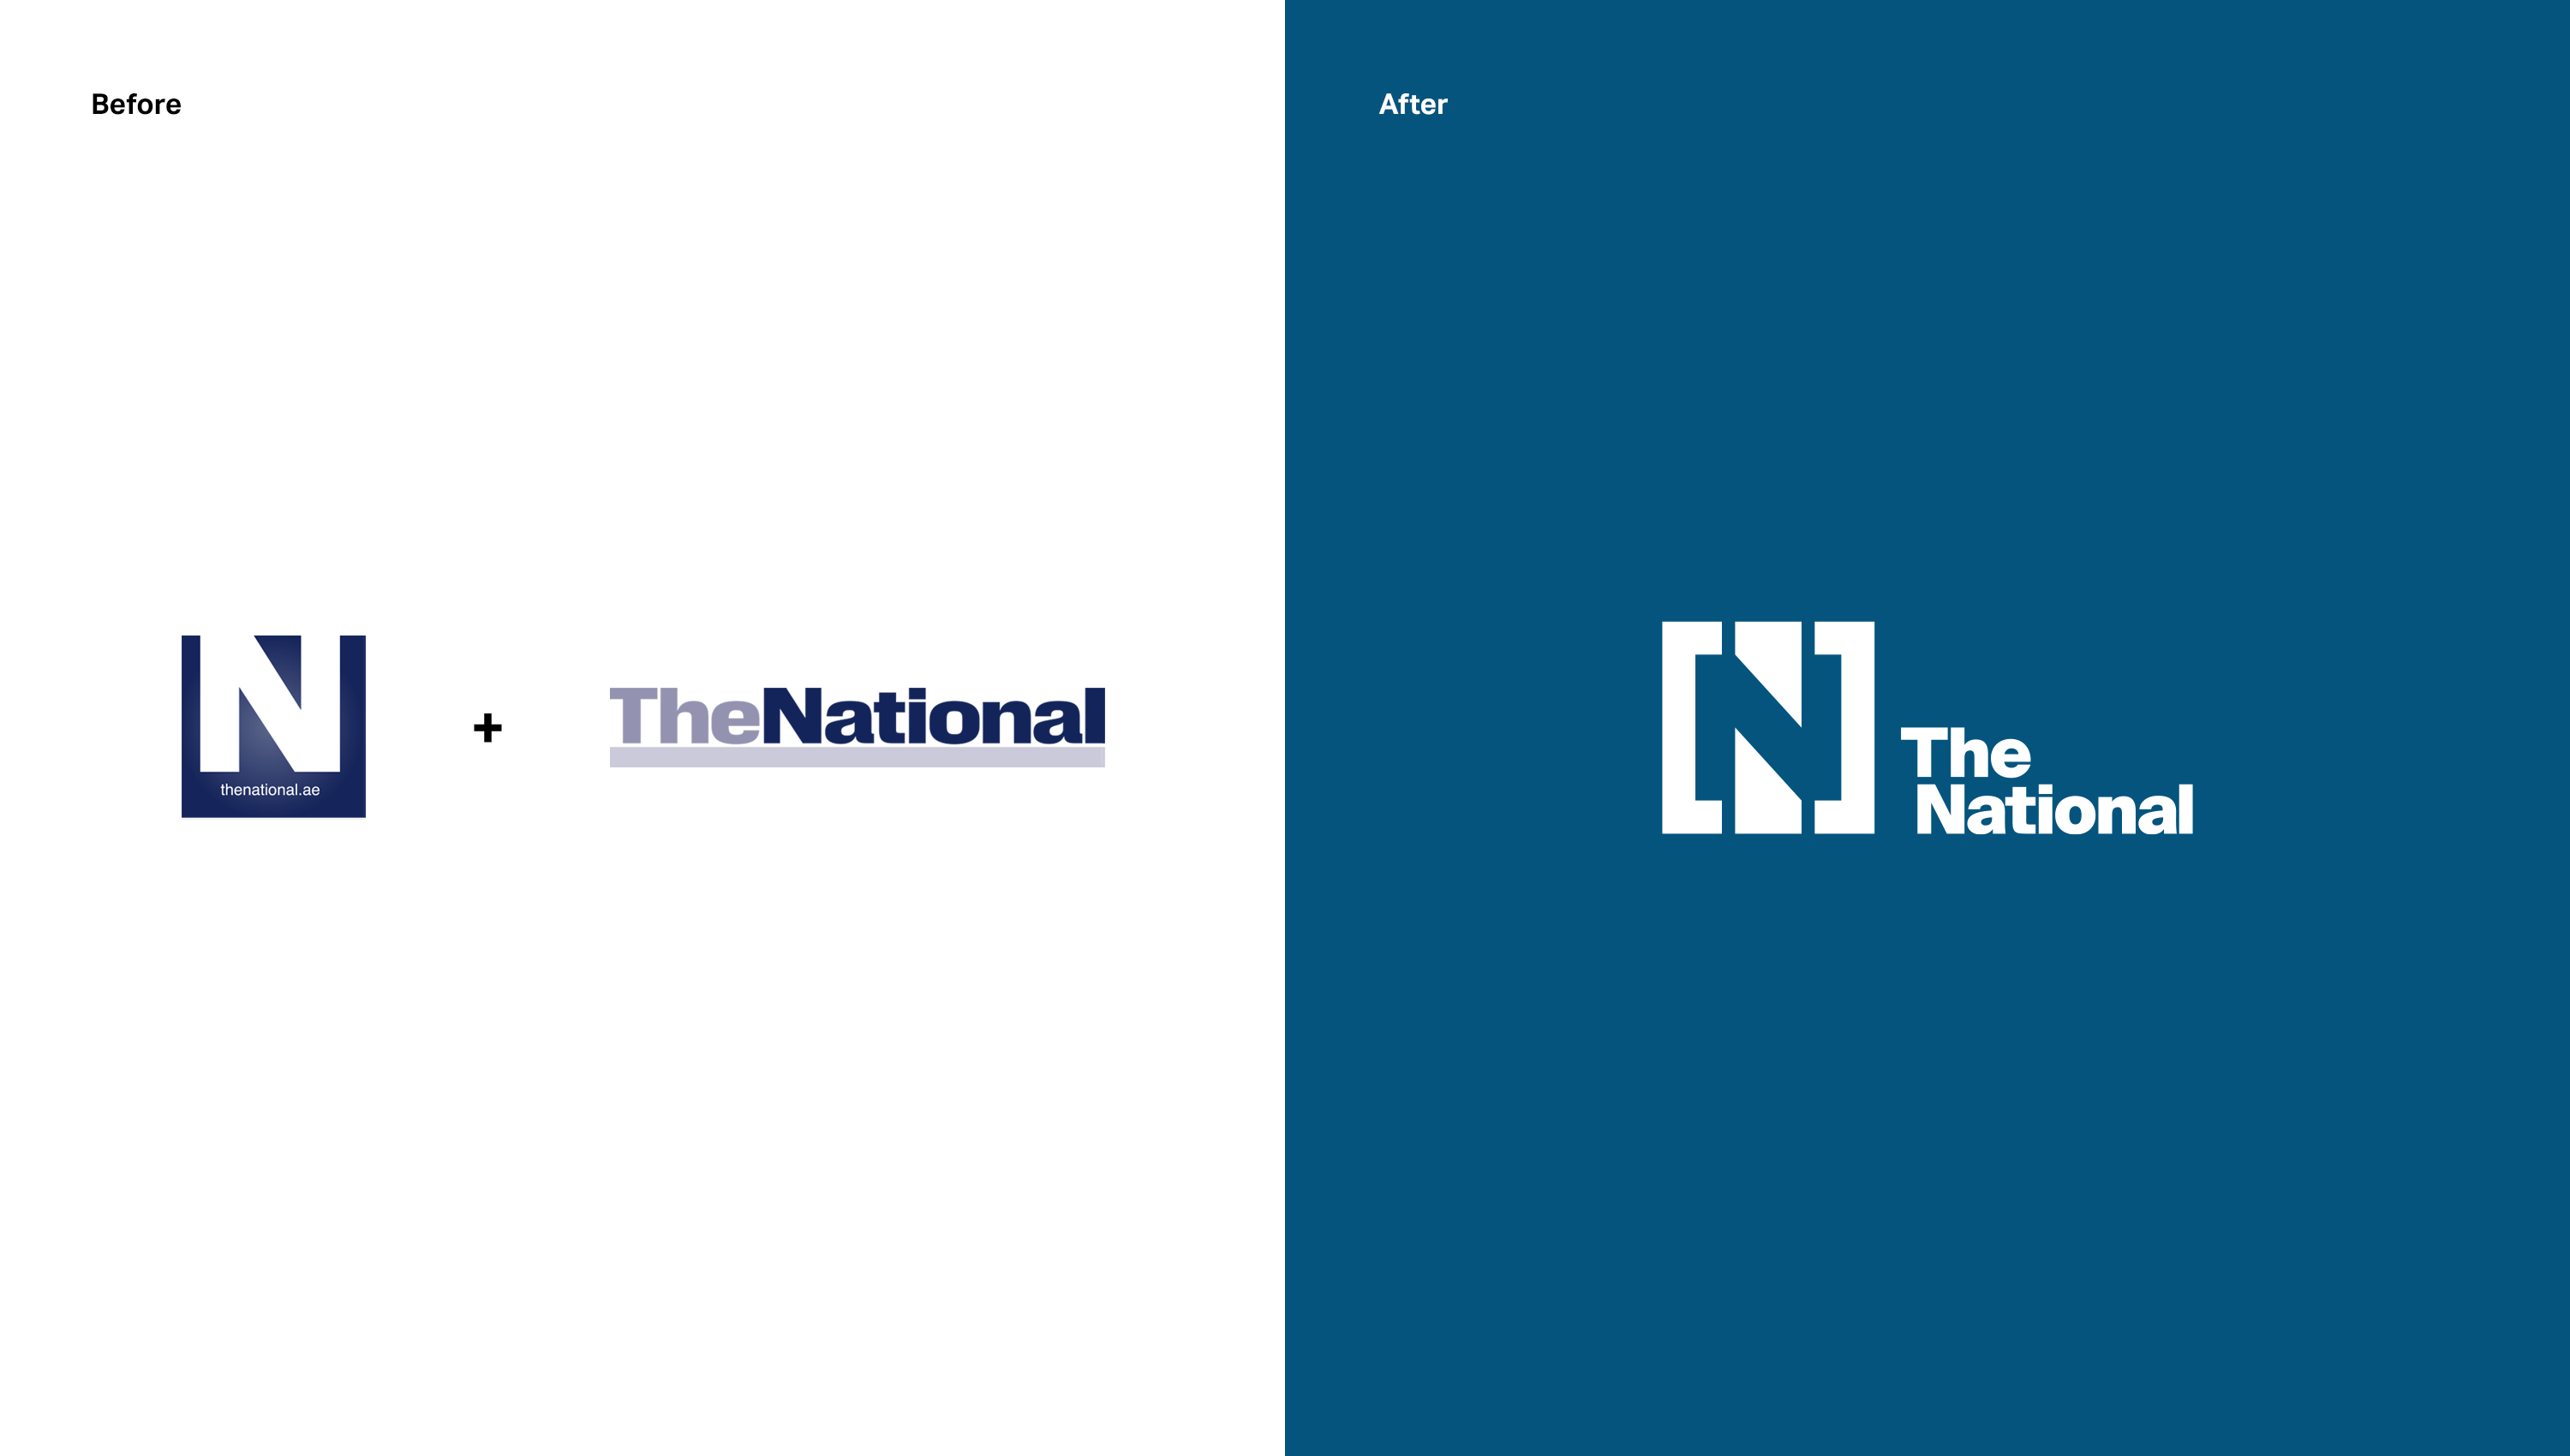 The-National-Project-BeforeAfter-TEST3